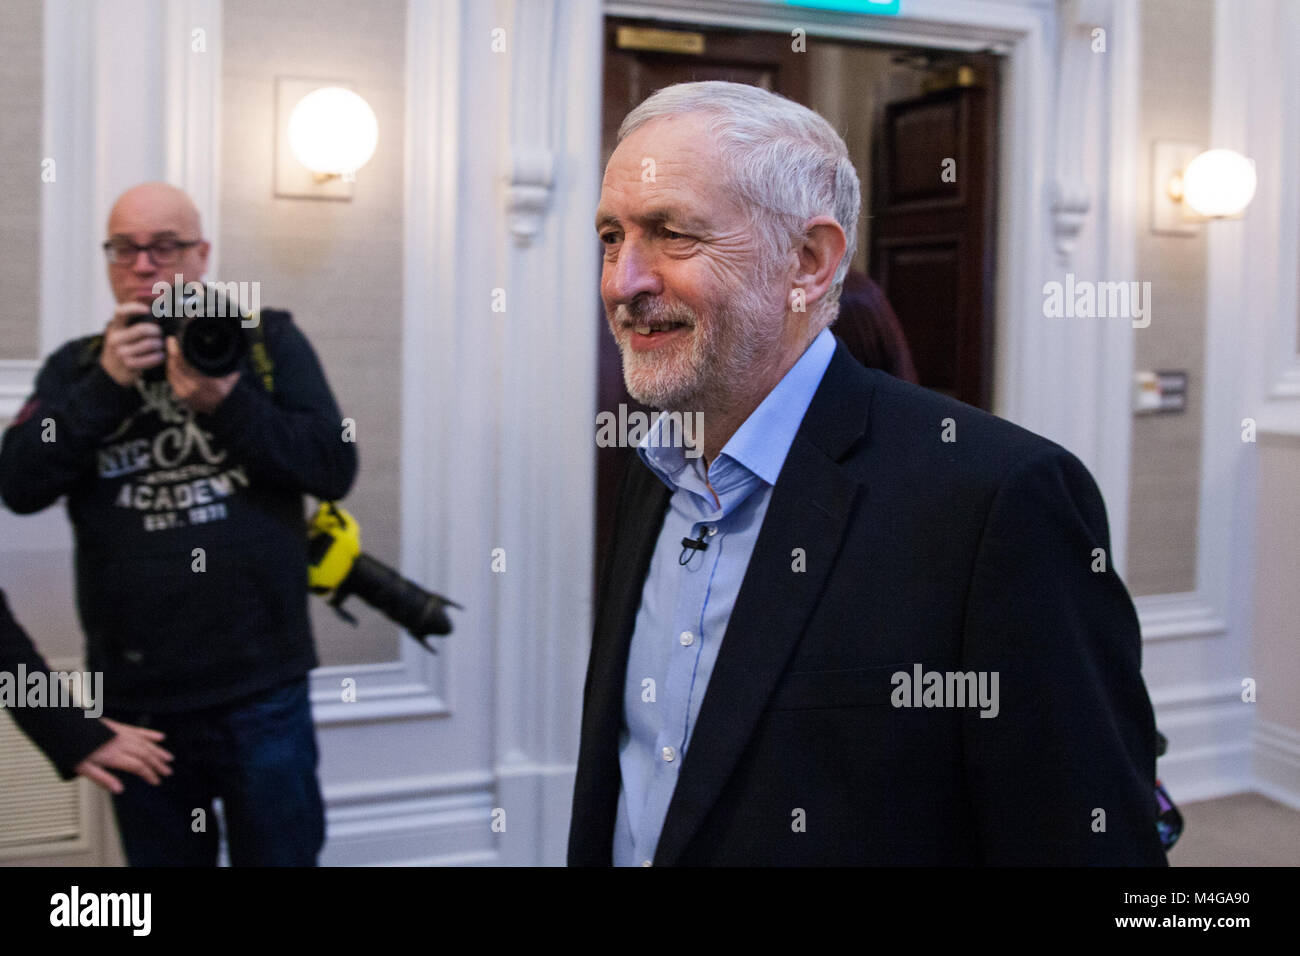 London, UK. 10th February, 2018. Jeremy Corbyn MP, Leader of the Opposition, arrives to address the Labour's Alternative - Stock Image